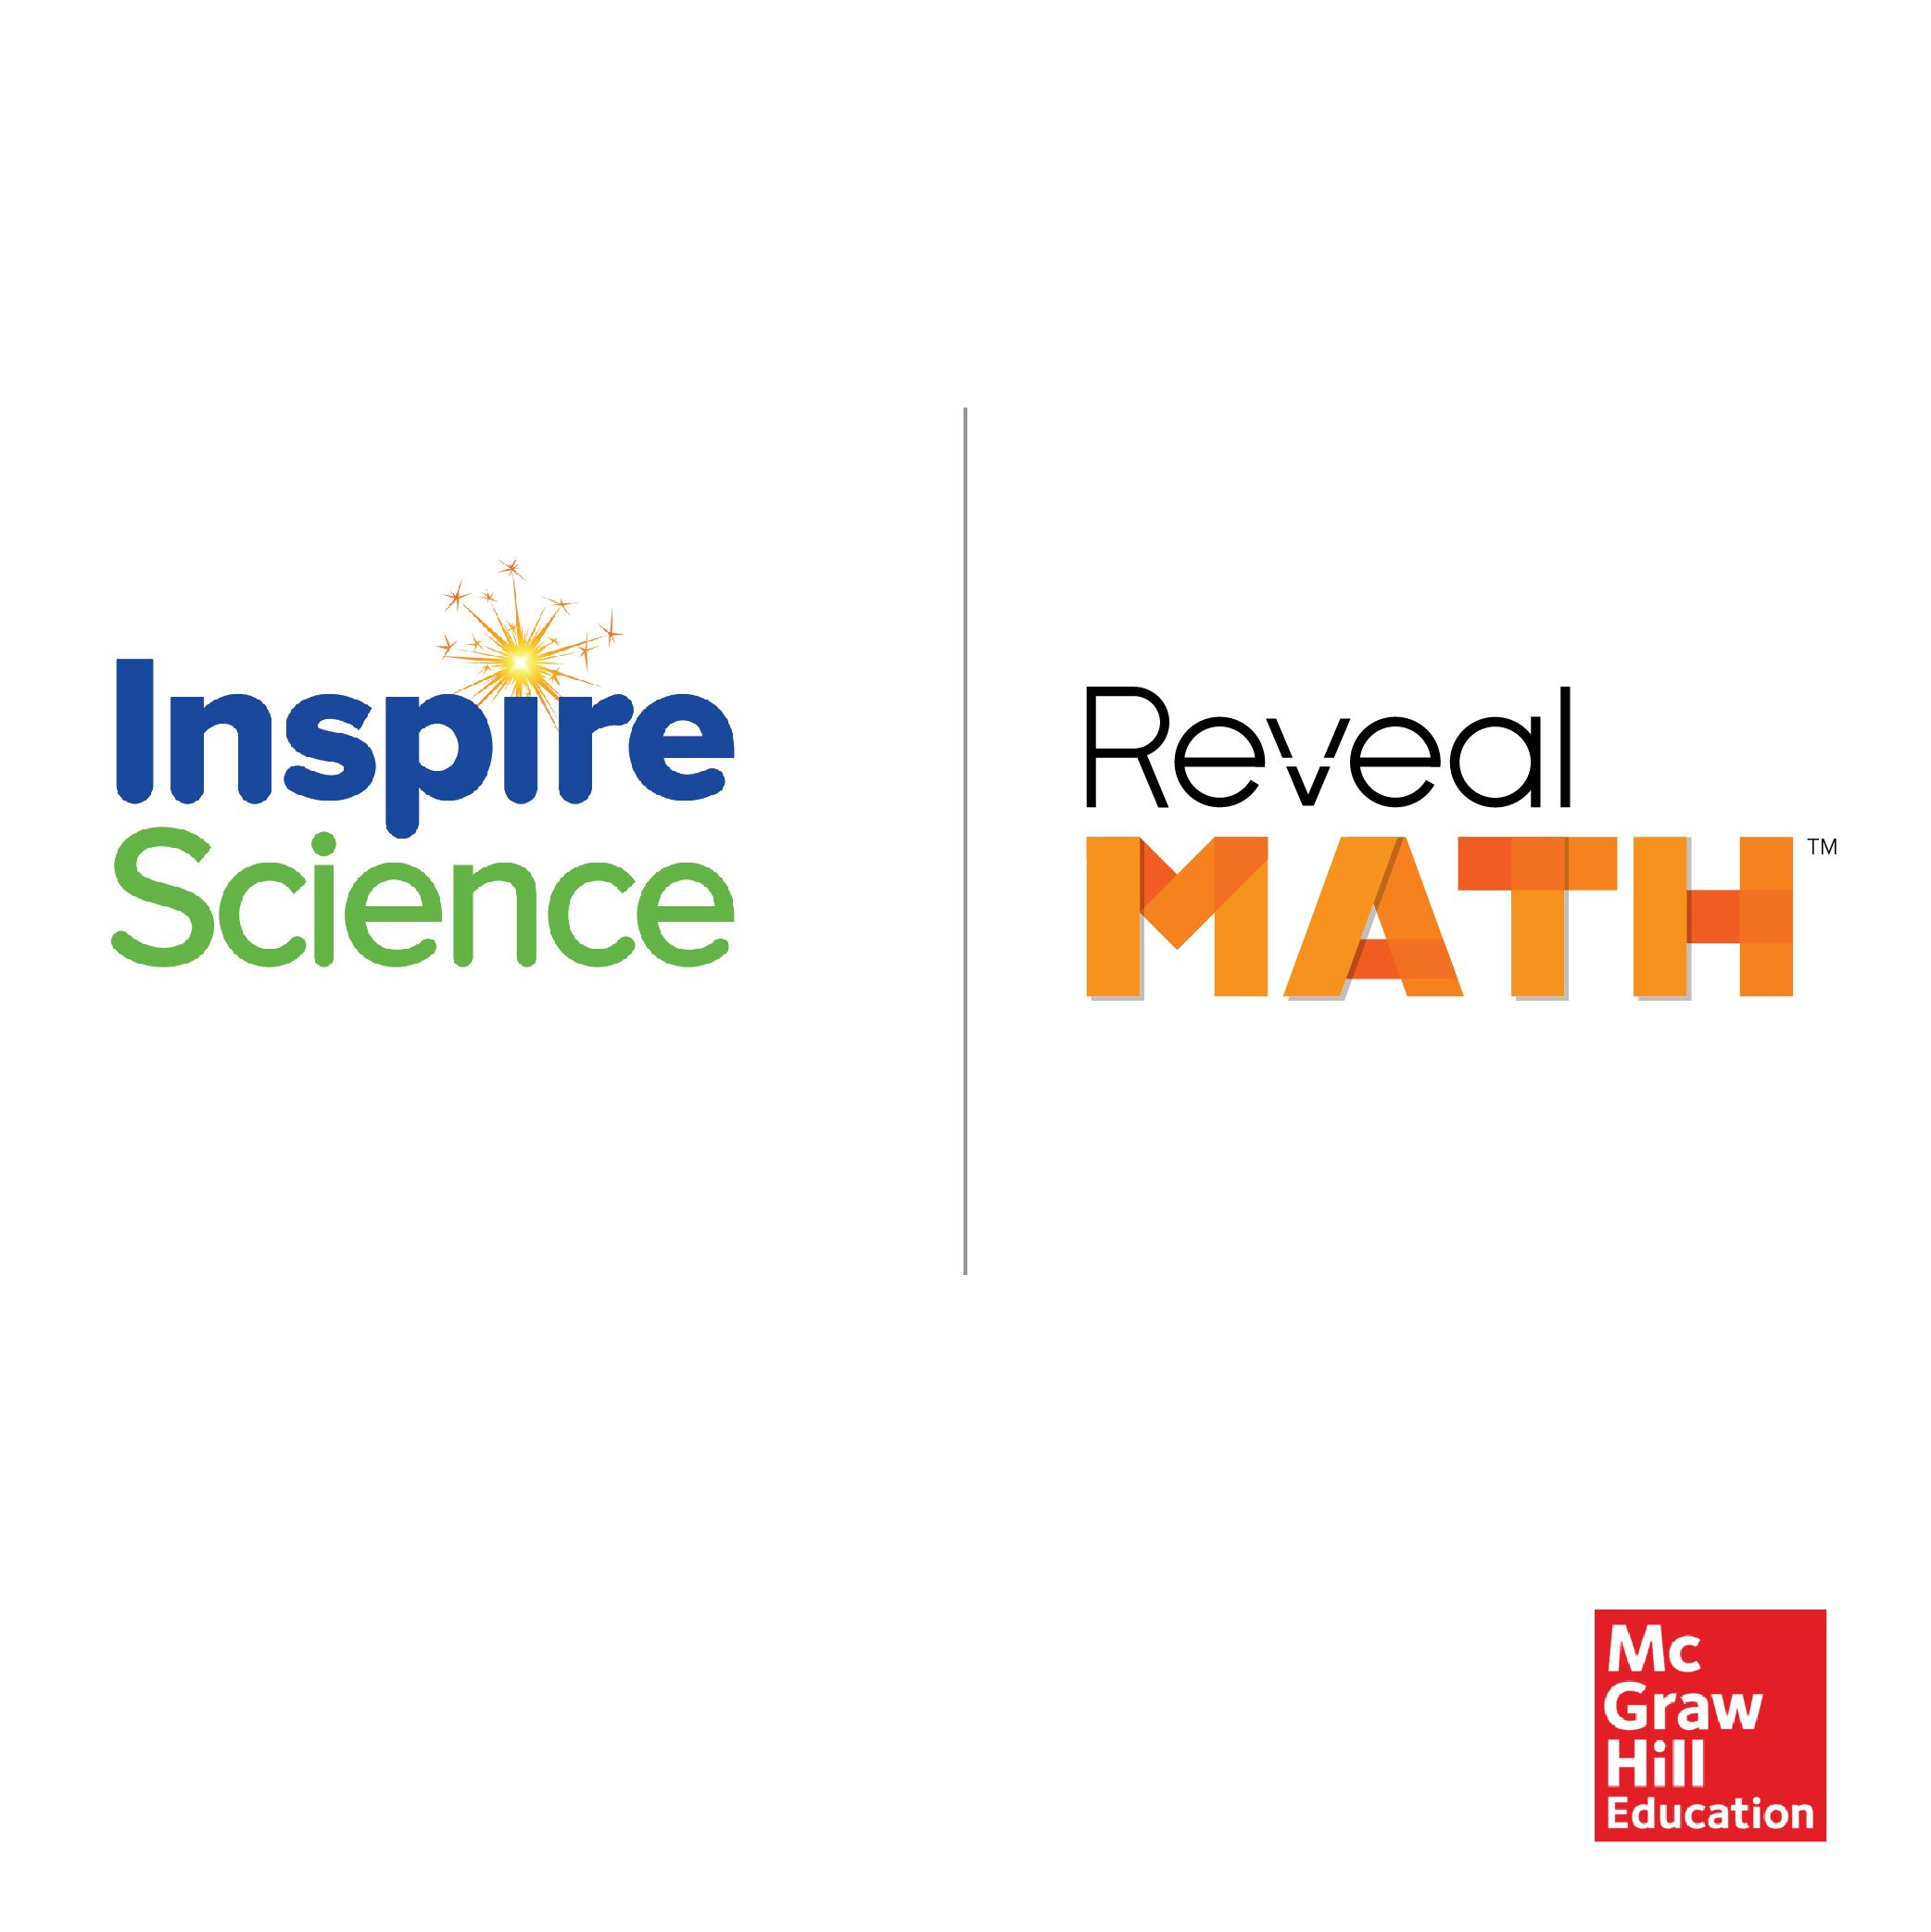 Inspire Science and Reveal Math